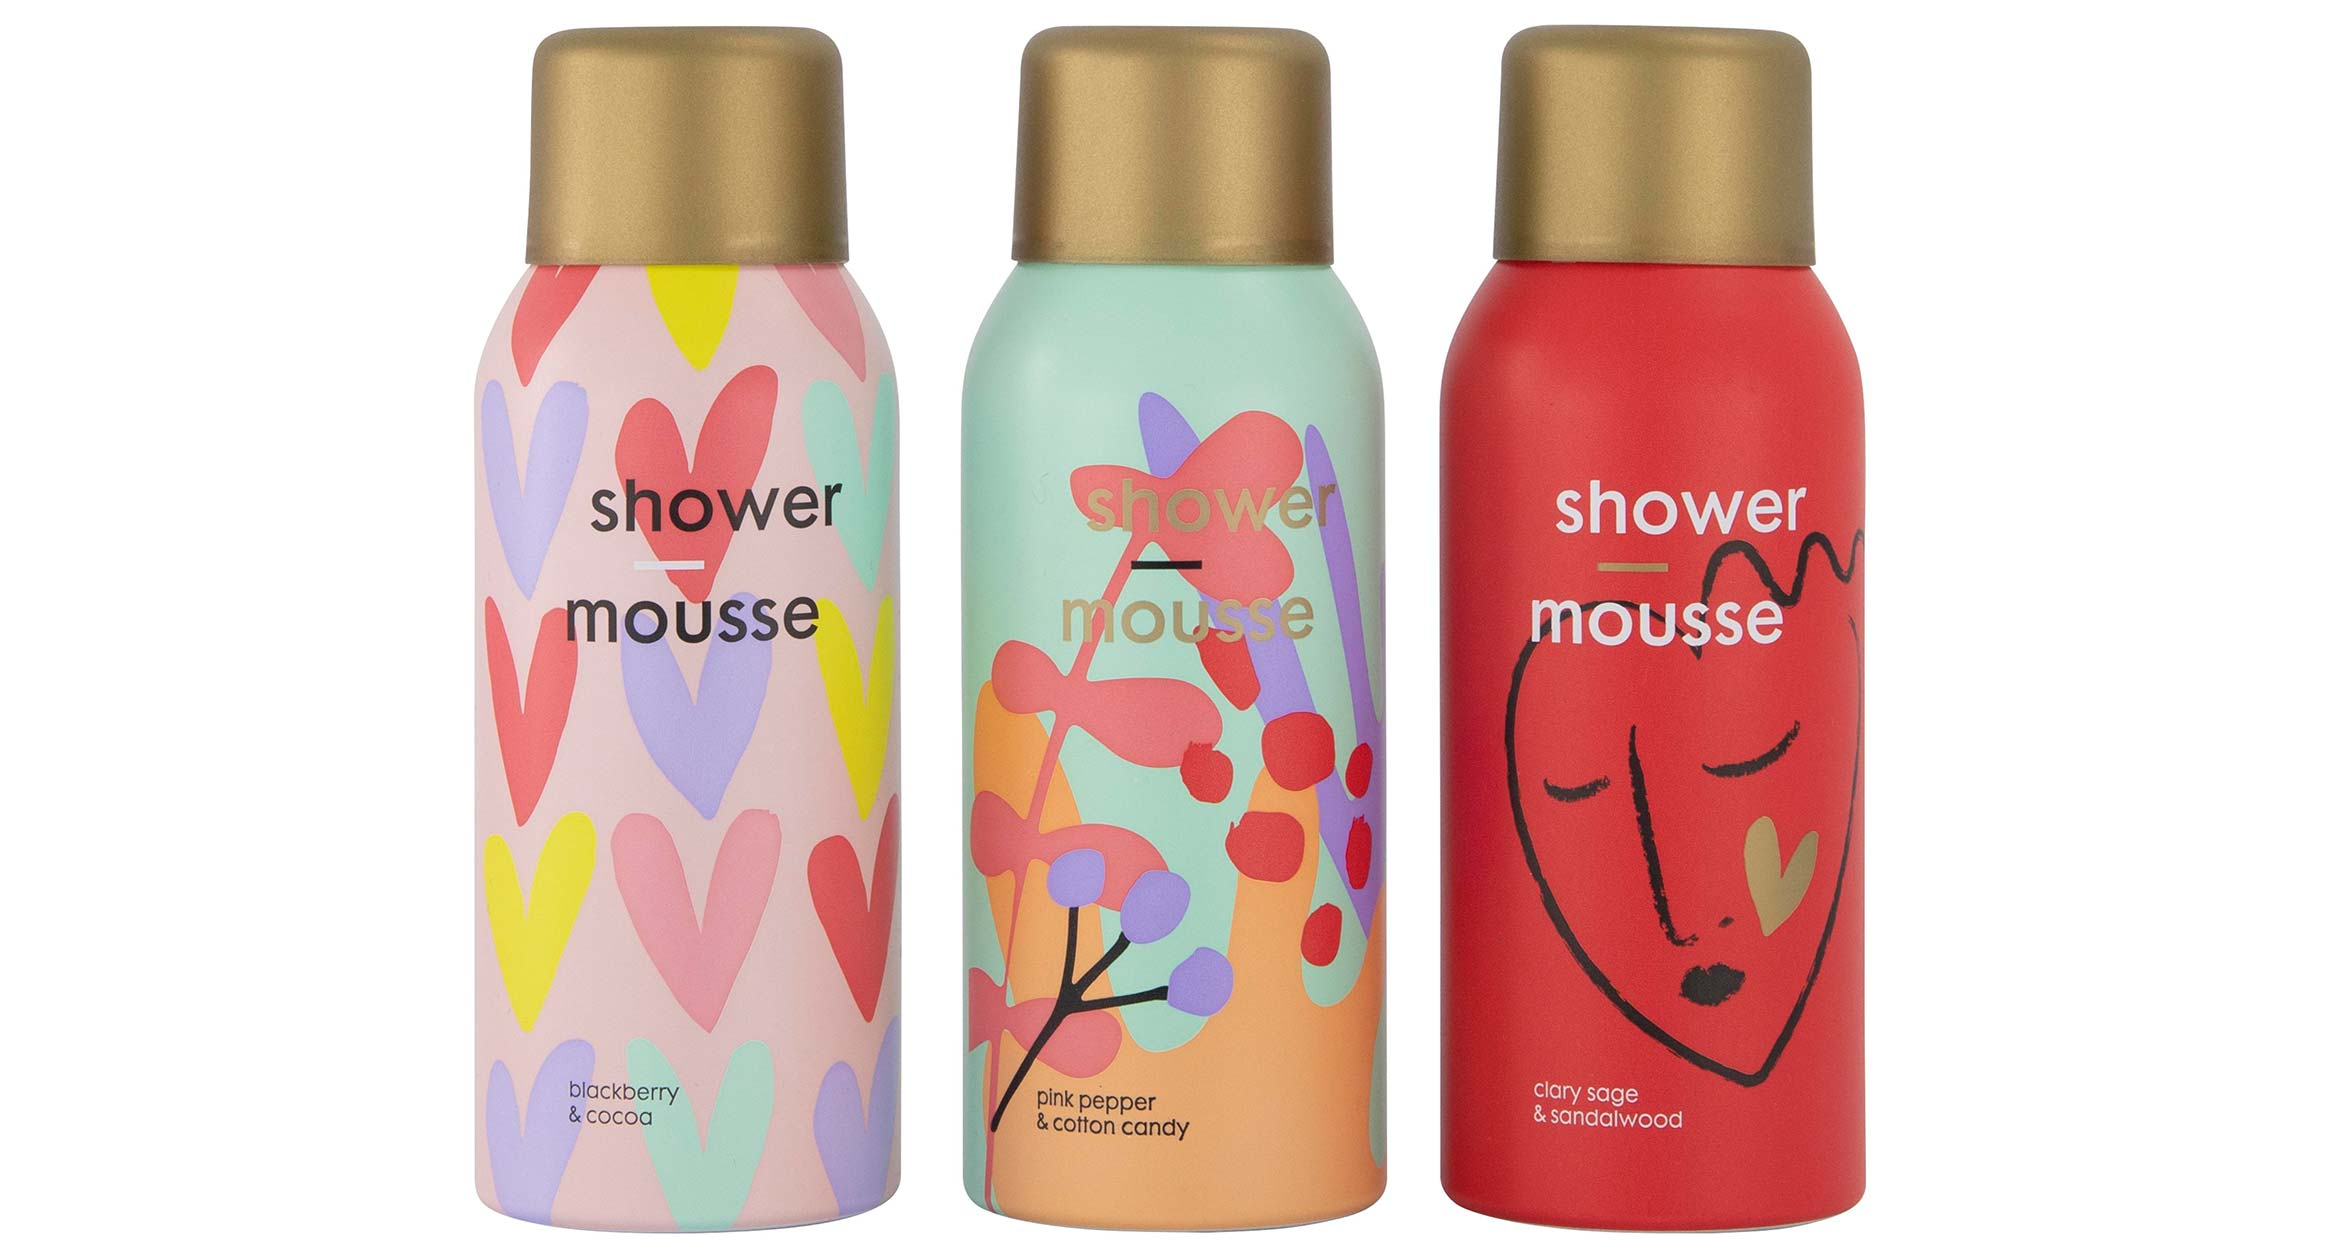 hema-i-cherry-ish-you-shower-mousse